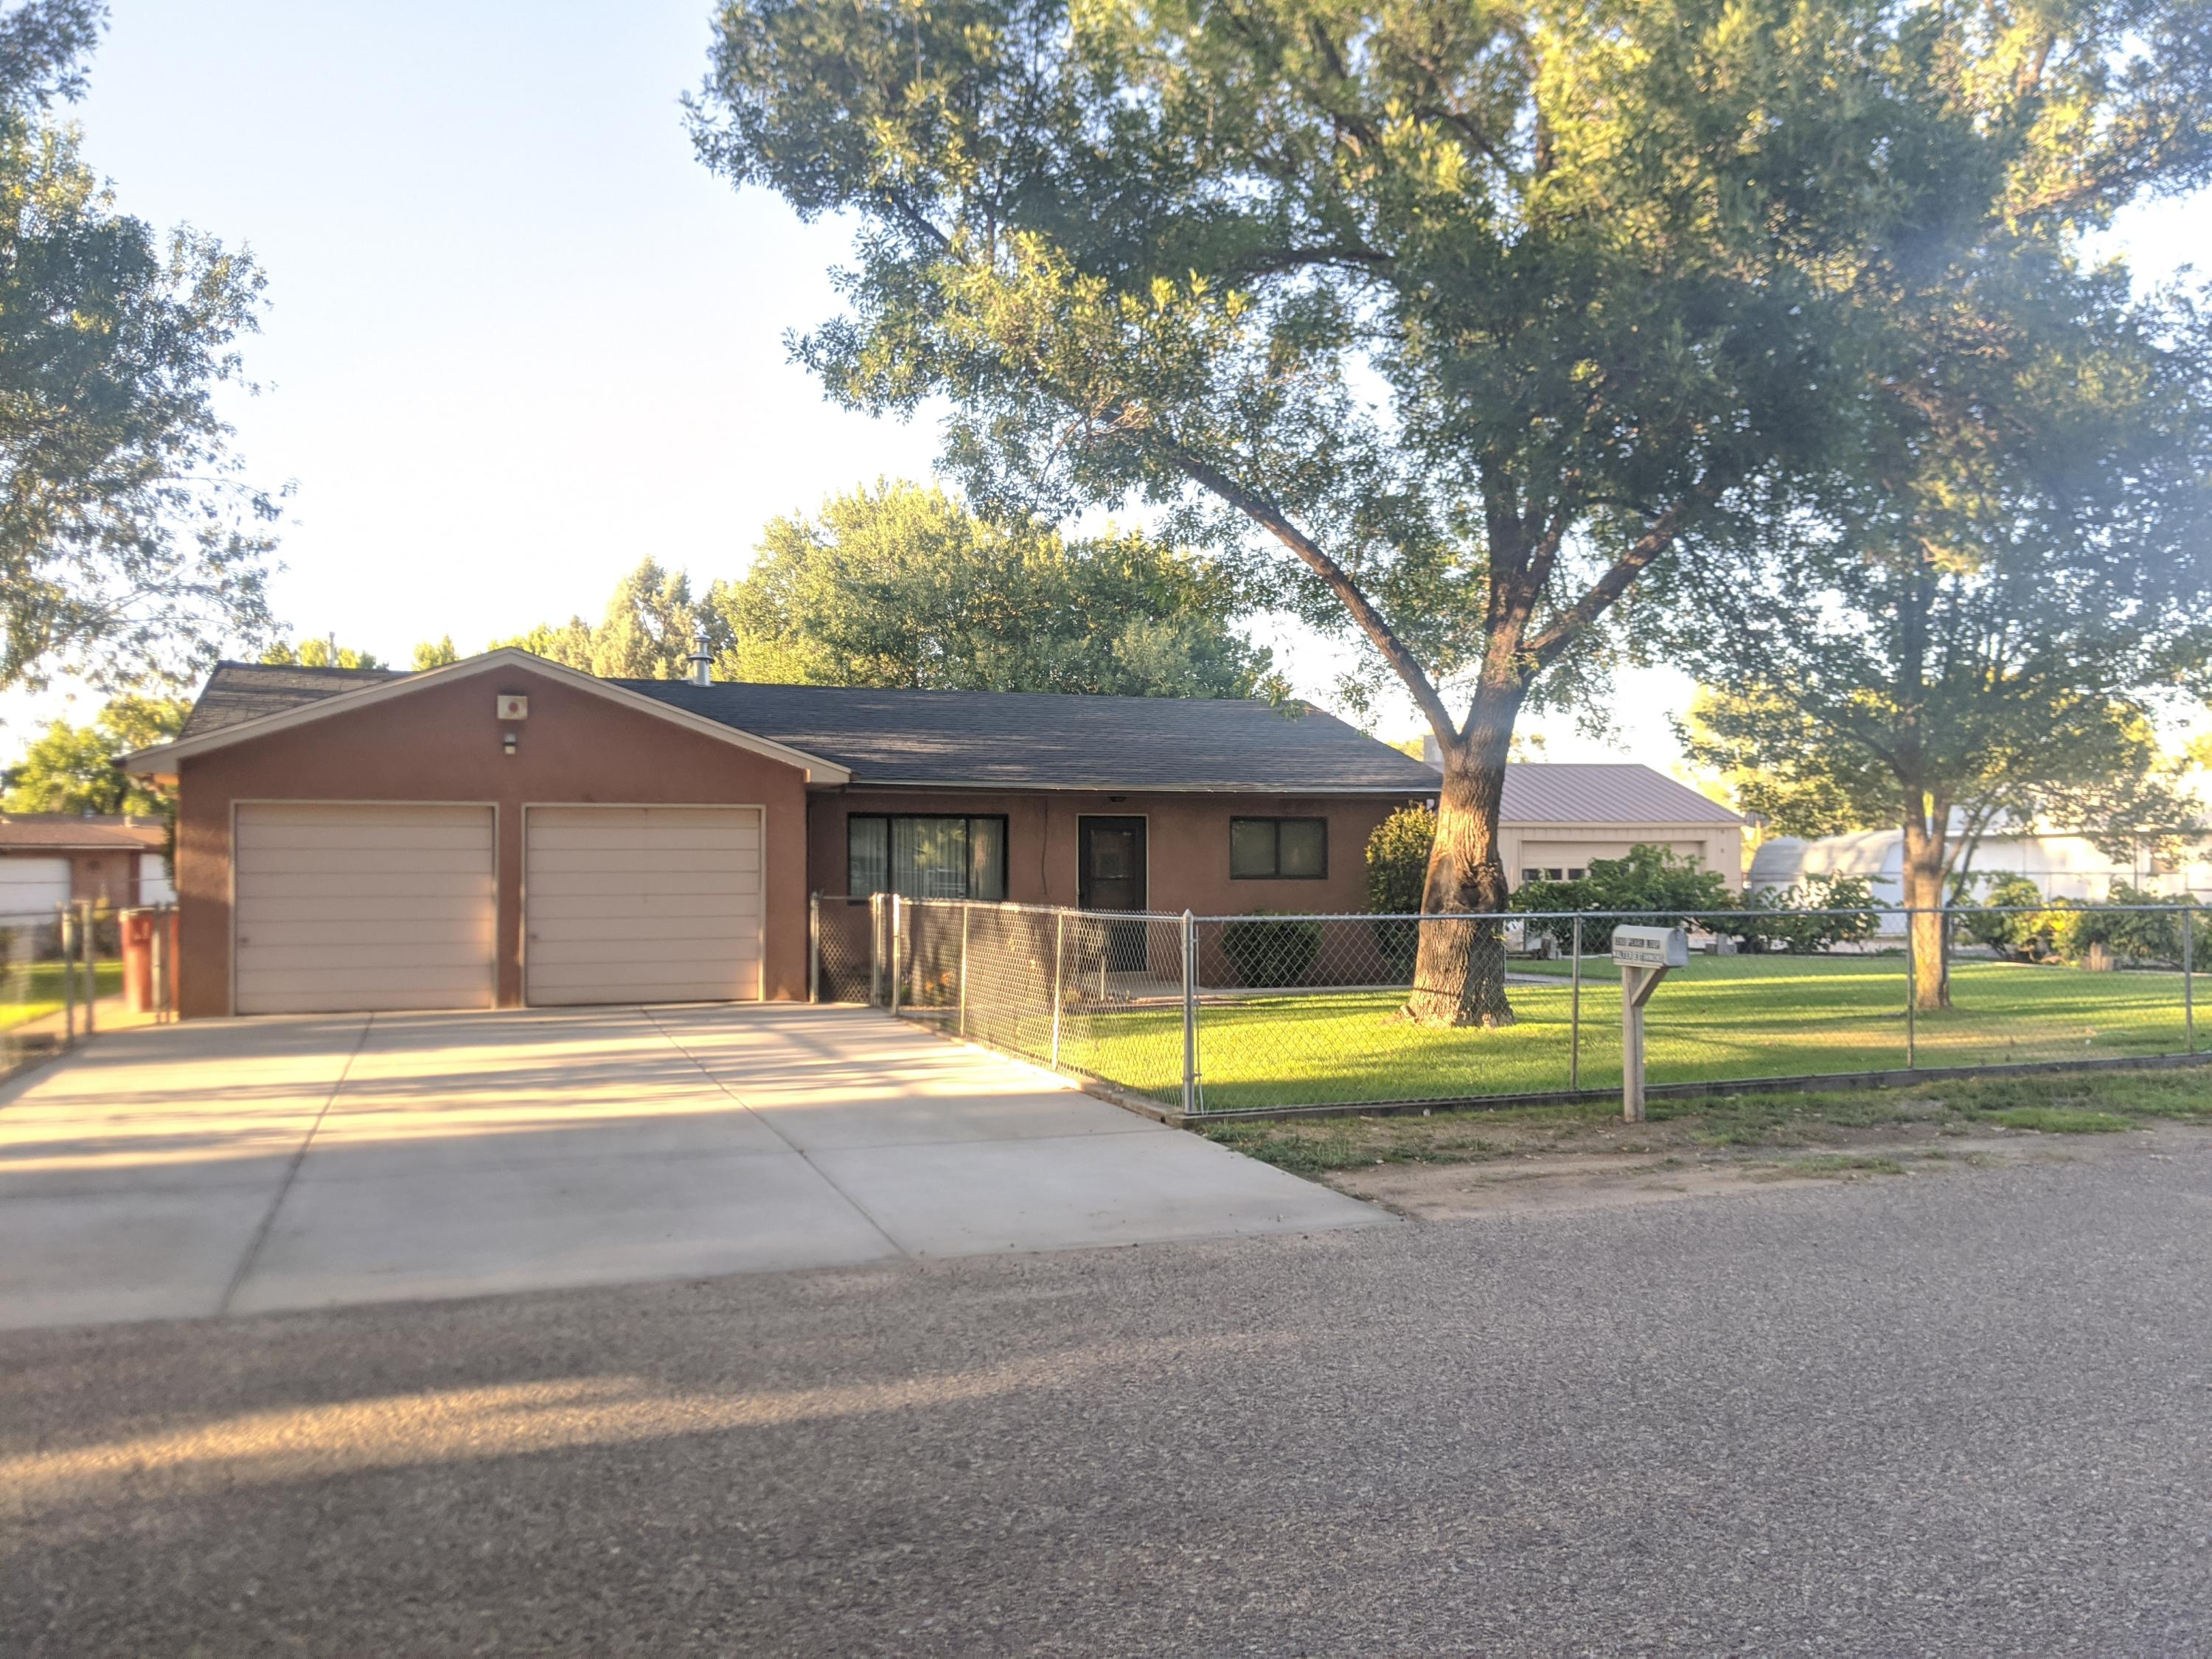 This charming home sits on a quiet street in the heart of Bosque Farms on a lush green half acre lot with mature shade trees. Inside you will find plenty of space with a formal living room, plus large family room for entertaining, open kitchen and dining area, and a heated sun room. In addition to the 2 car attached garage, there is a great approximately 20x30 insulated shop wired with 220, an additional storage building with built in chicken coops and green house, irrigation well and full sprinkler system for easy upkeep on the yard. This meticulously maintained home also has refrigerated air and a roof under a year old! Easy access to walking tails, bike path, and tennis courts, country living with all the conveniences!